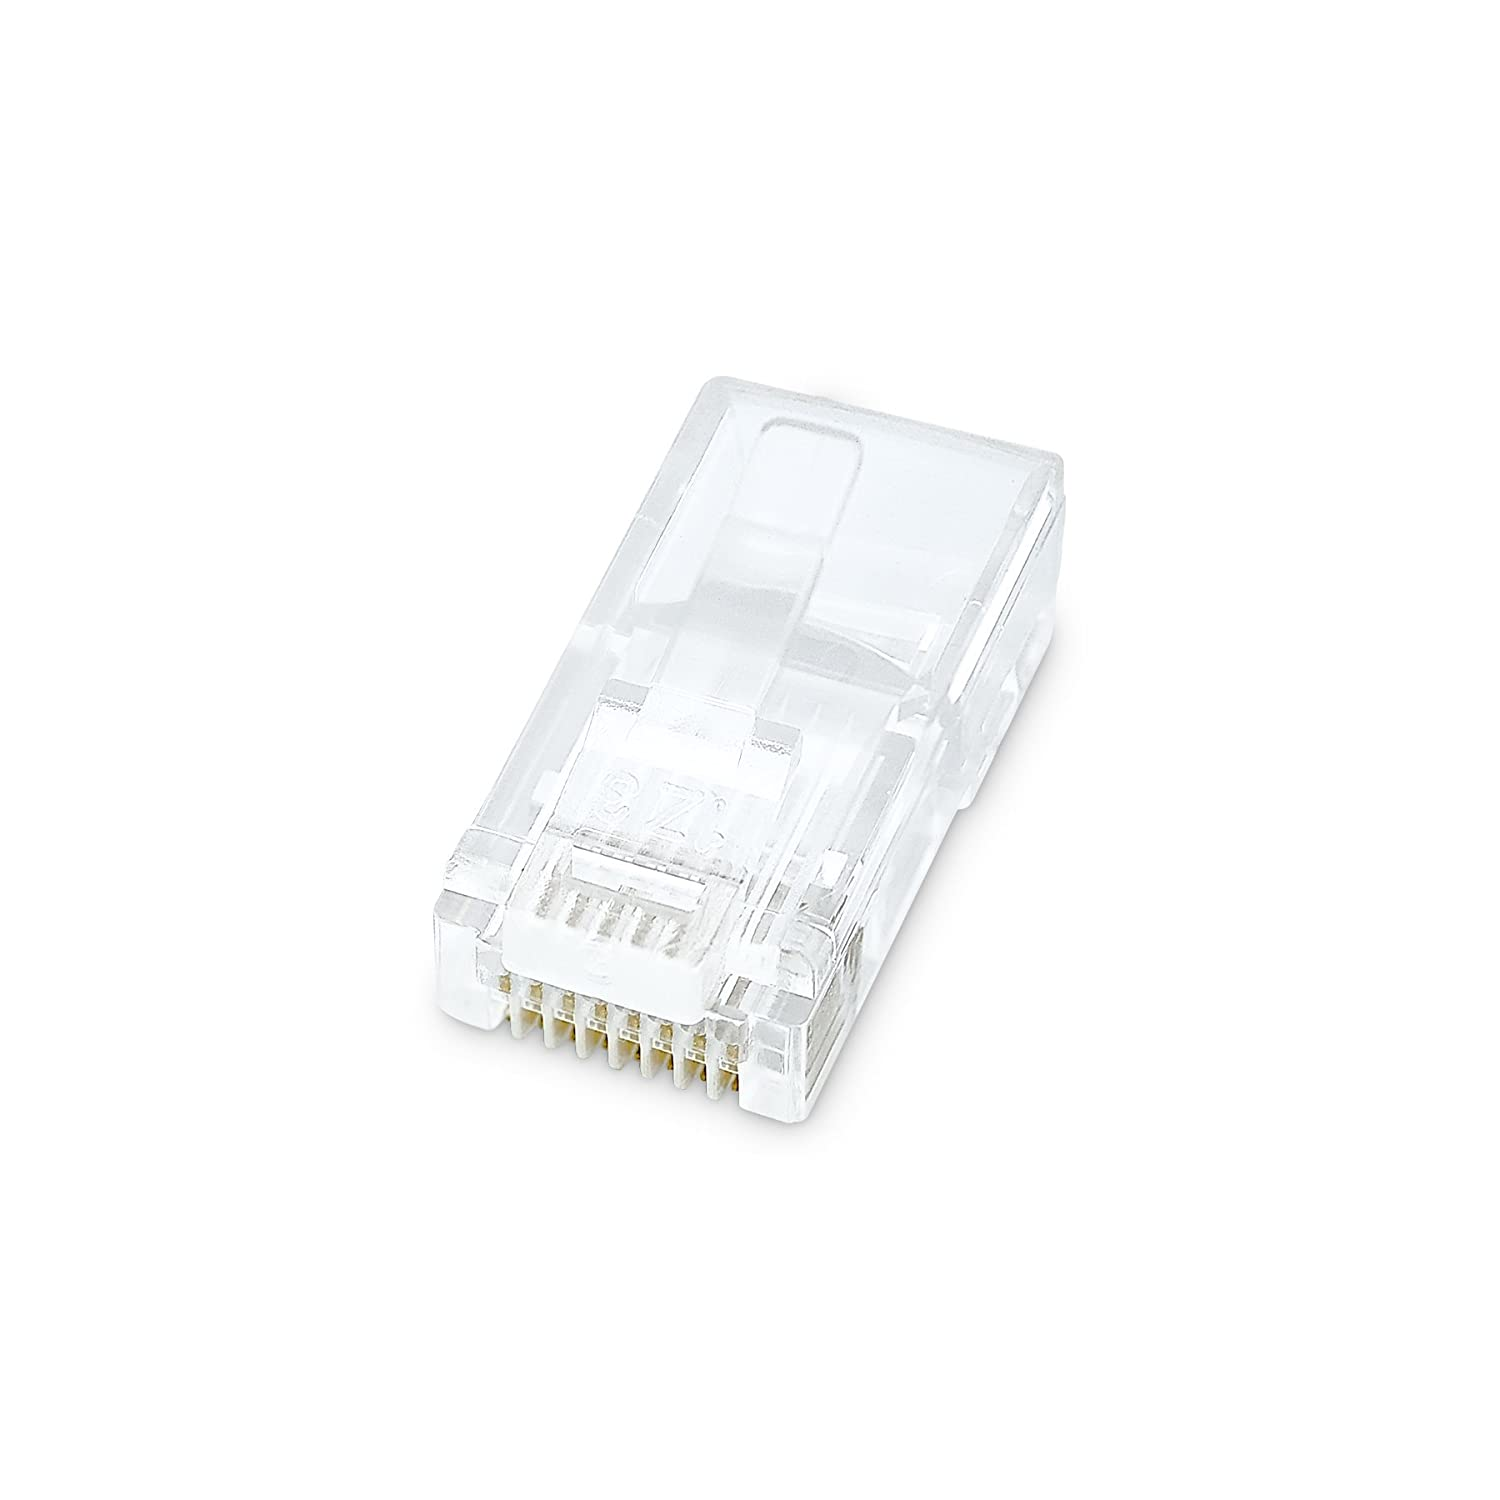 Belkin Rj45 Plug With Gold Plated Contacts For Flat Cat 5e Wiring Diagram Cable 10 Pack Electronics